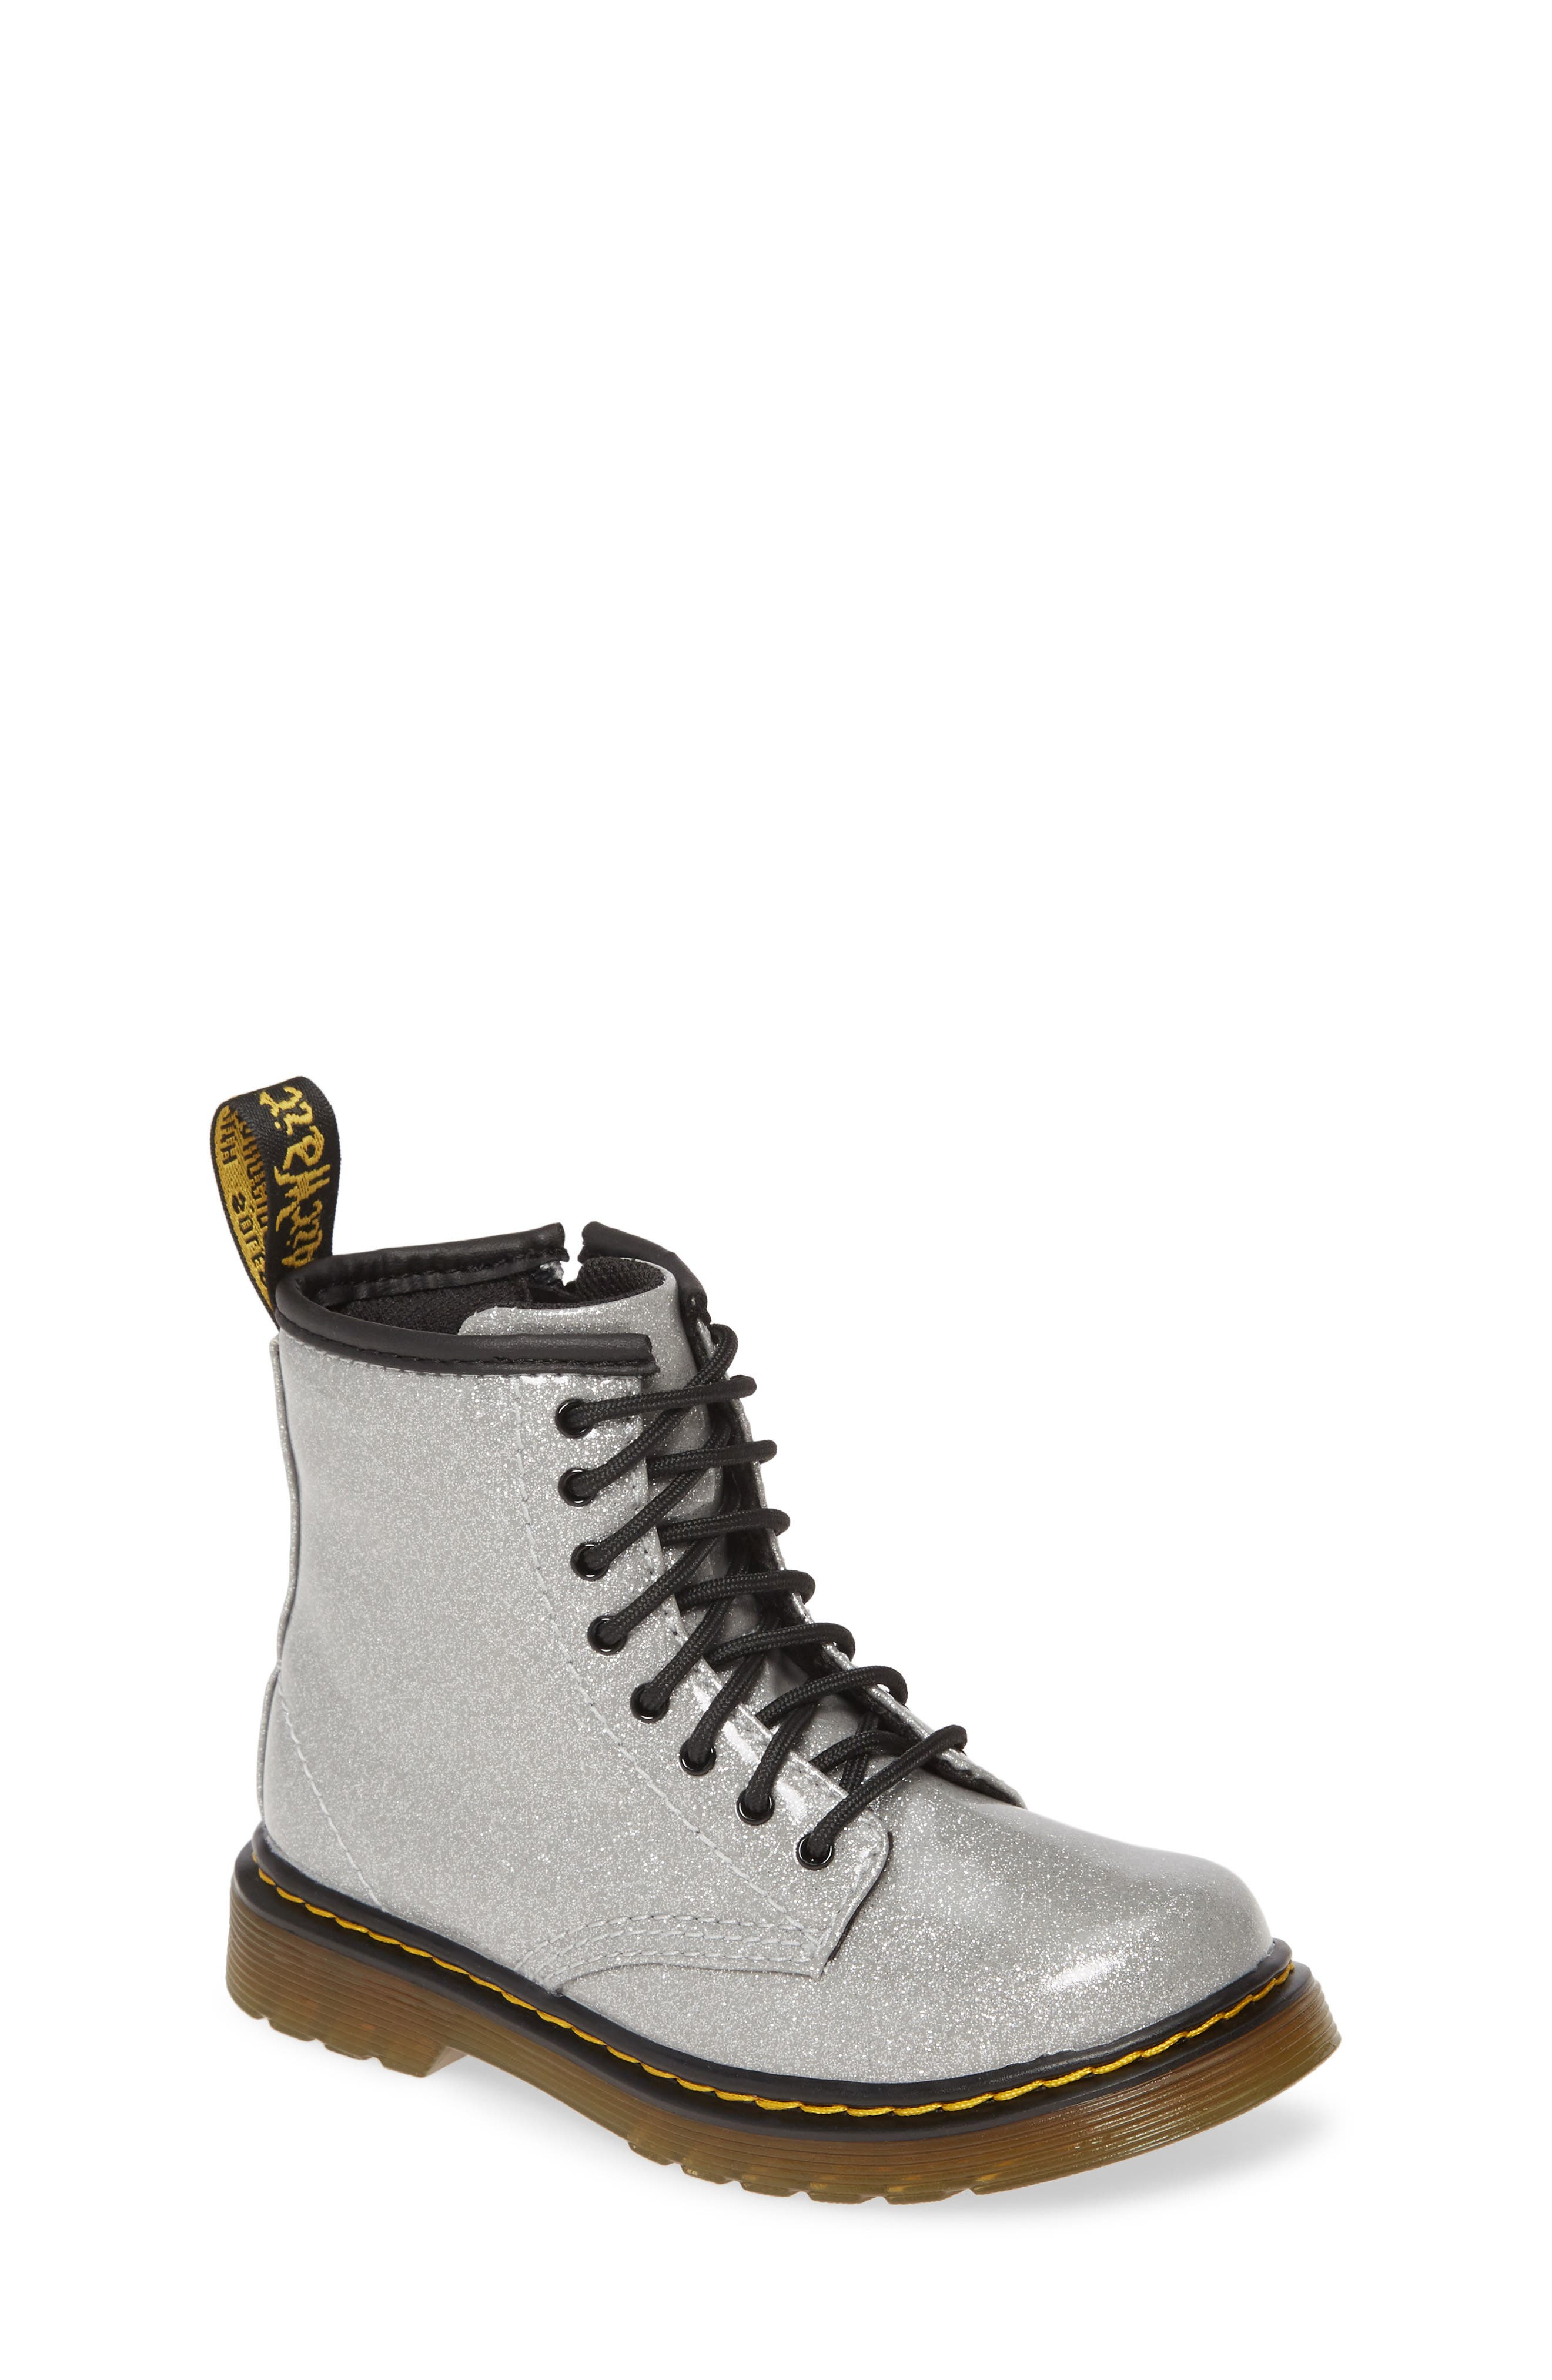 Shoes Girls' Shoes: Find Dr. Martens products online at